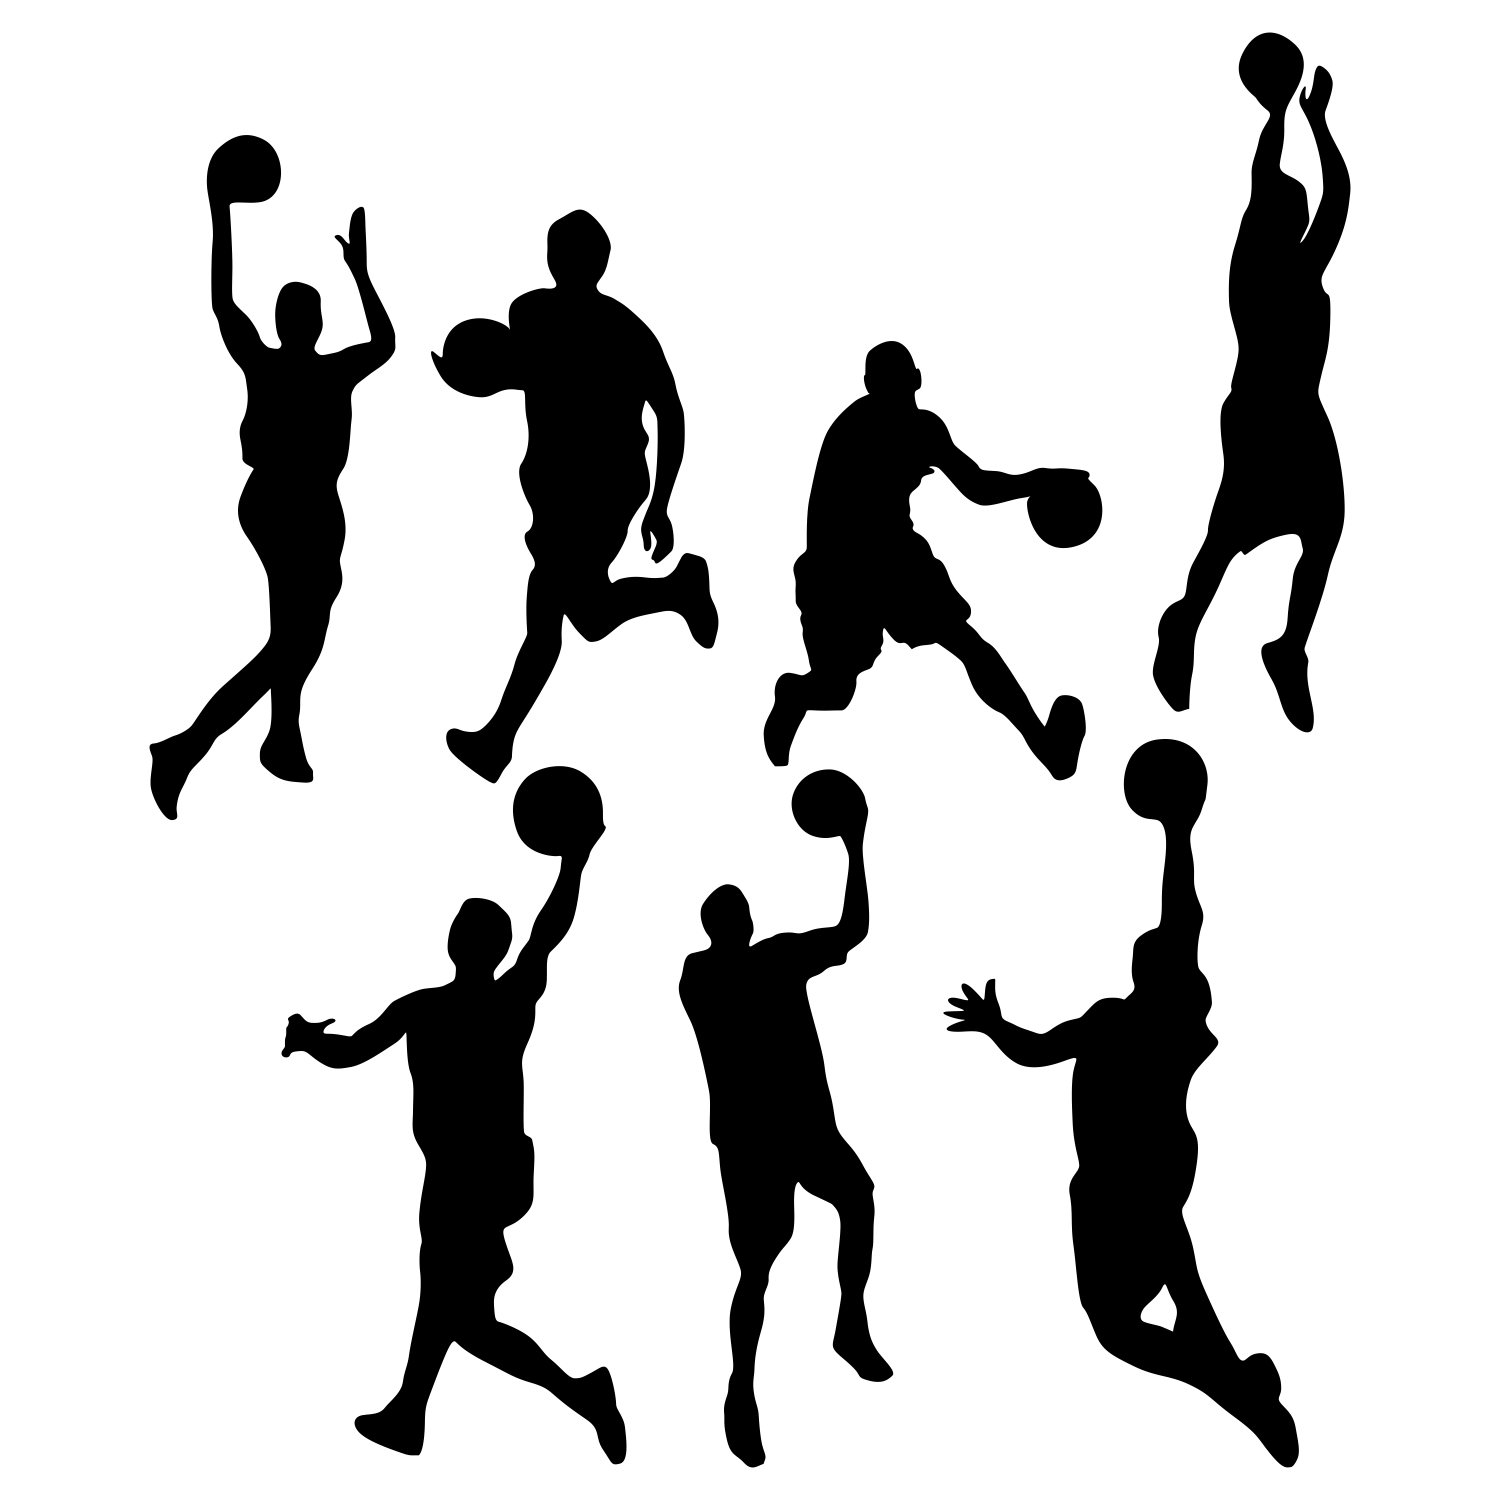 Free Silhouette Basketball Cliparts Download Free Clip Art Free Clip Art On Clipart Library